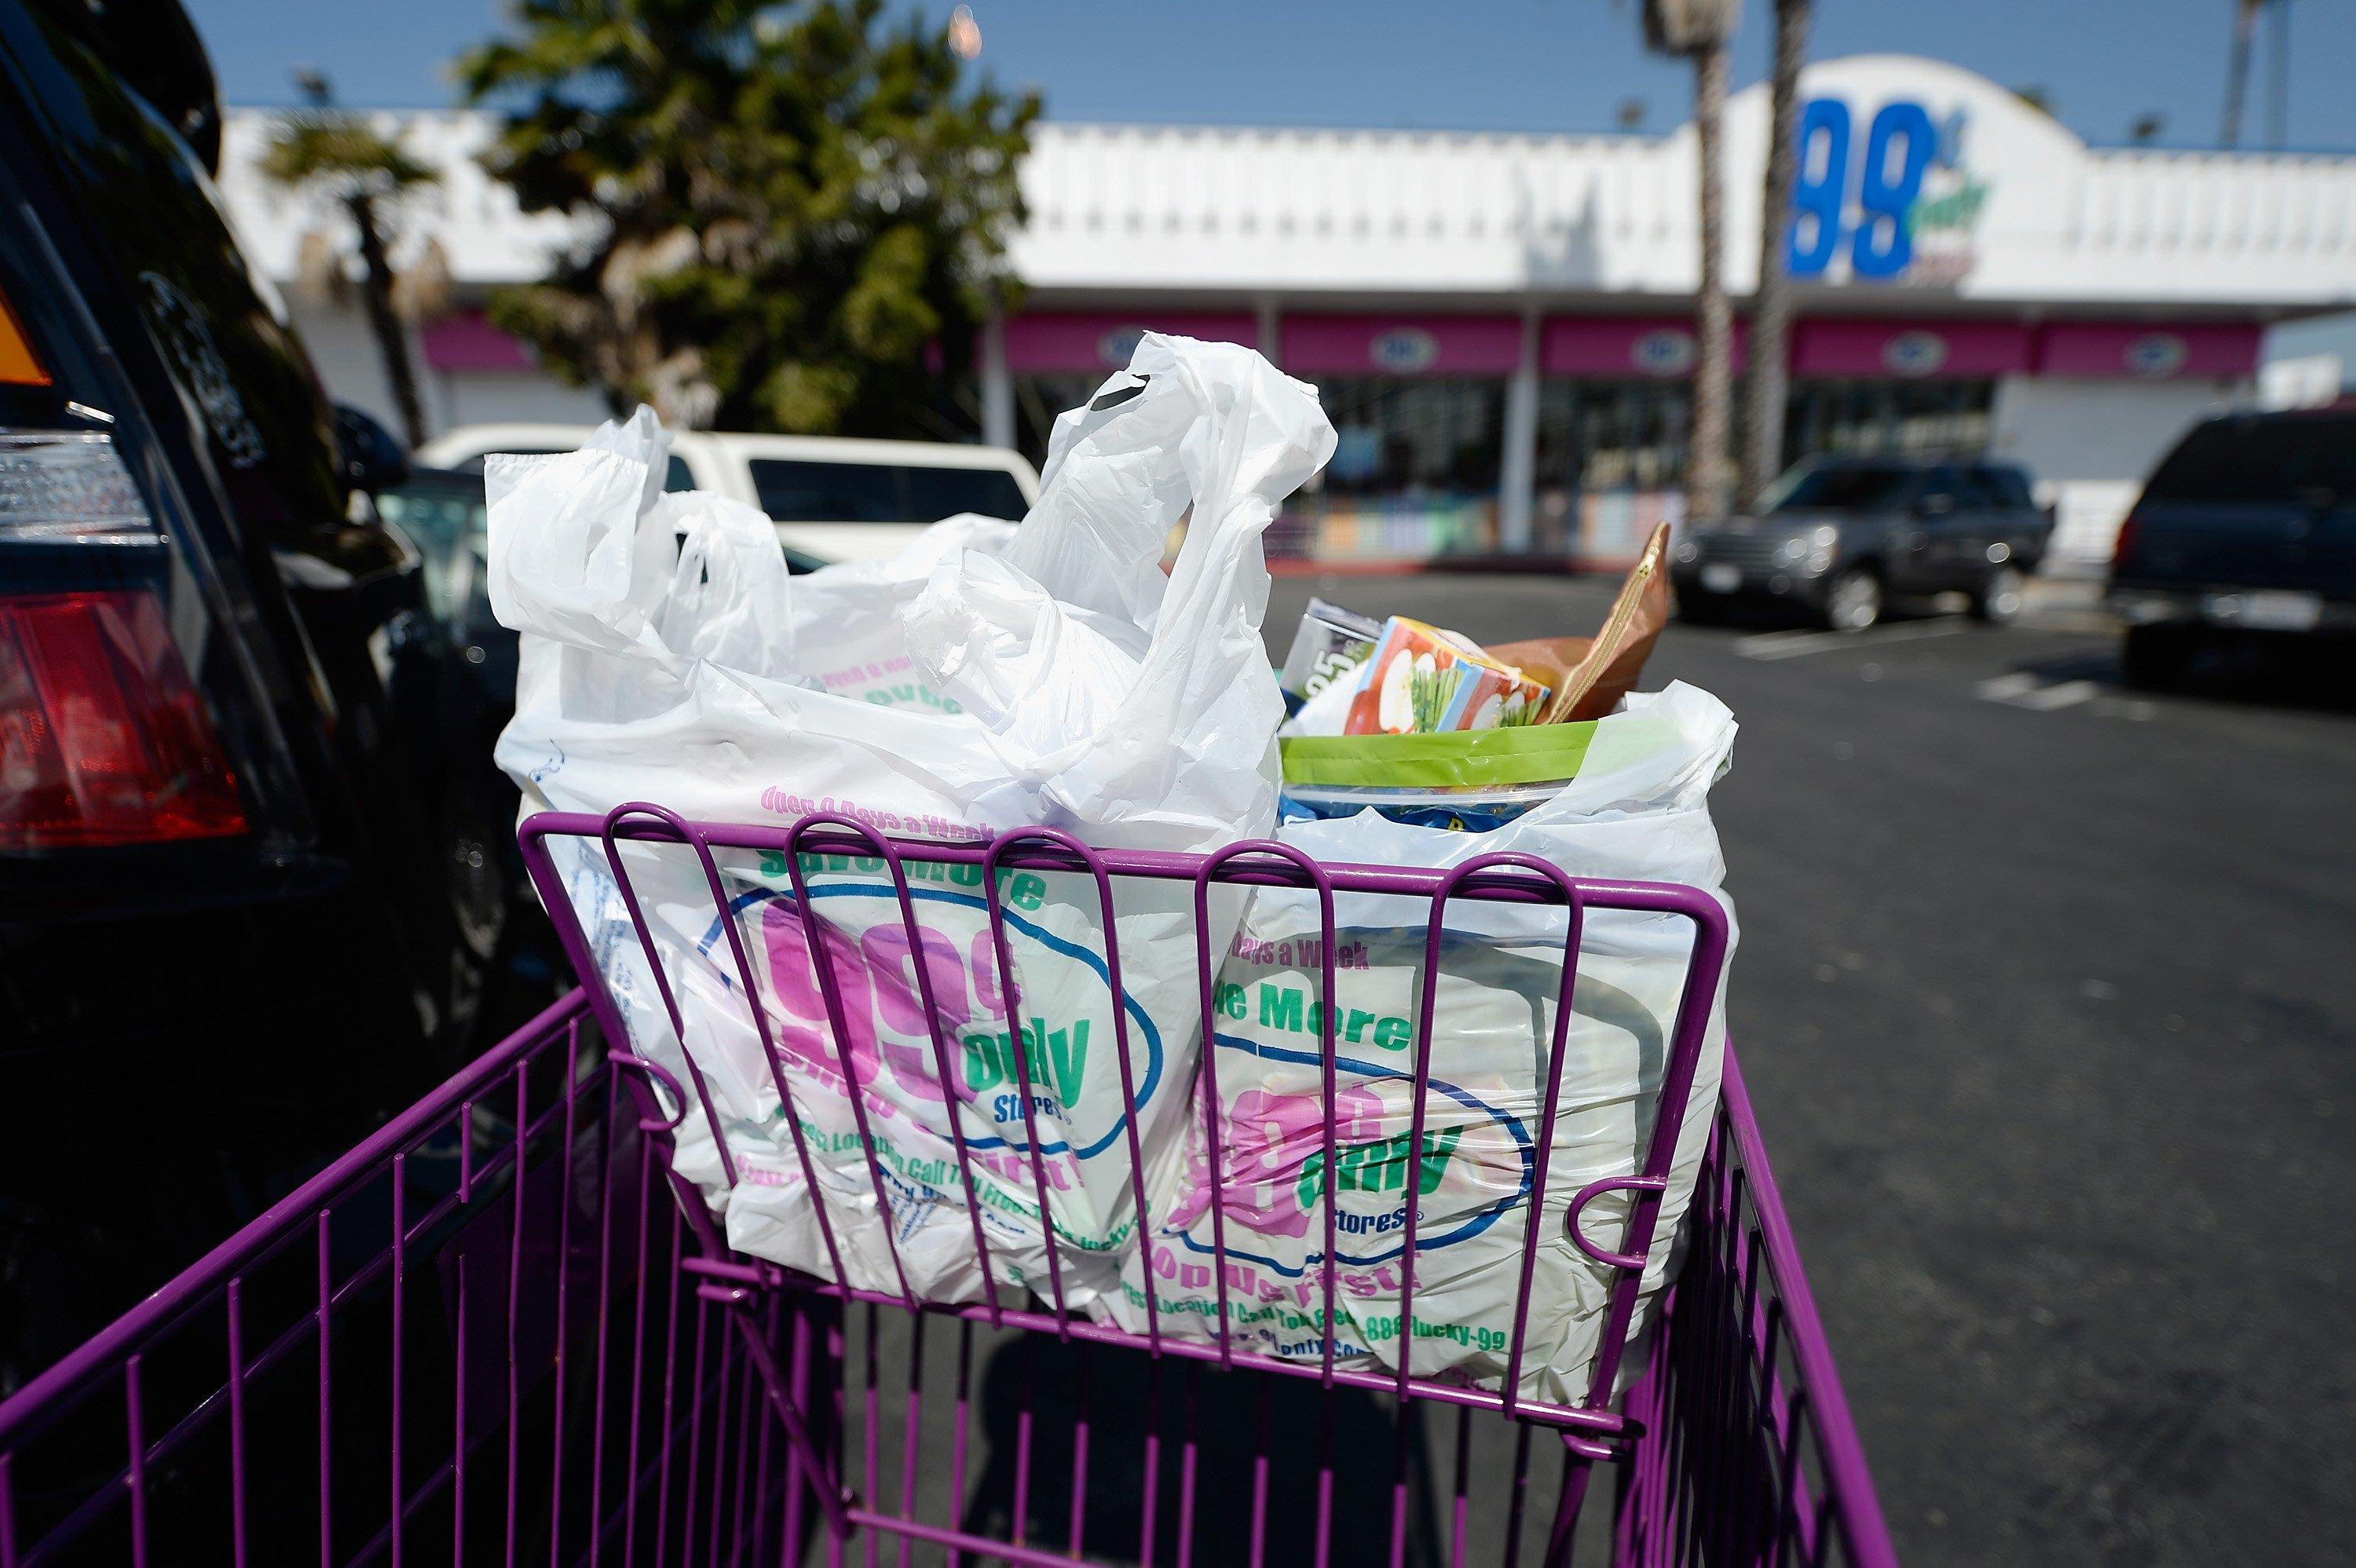 california governor signs law to ban plastic bags nbc news. Black Bedroom Furniture Sets. Home Design Ideas